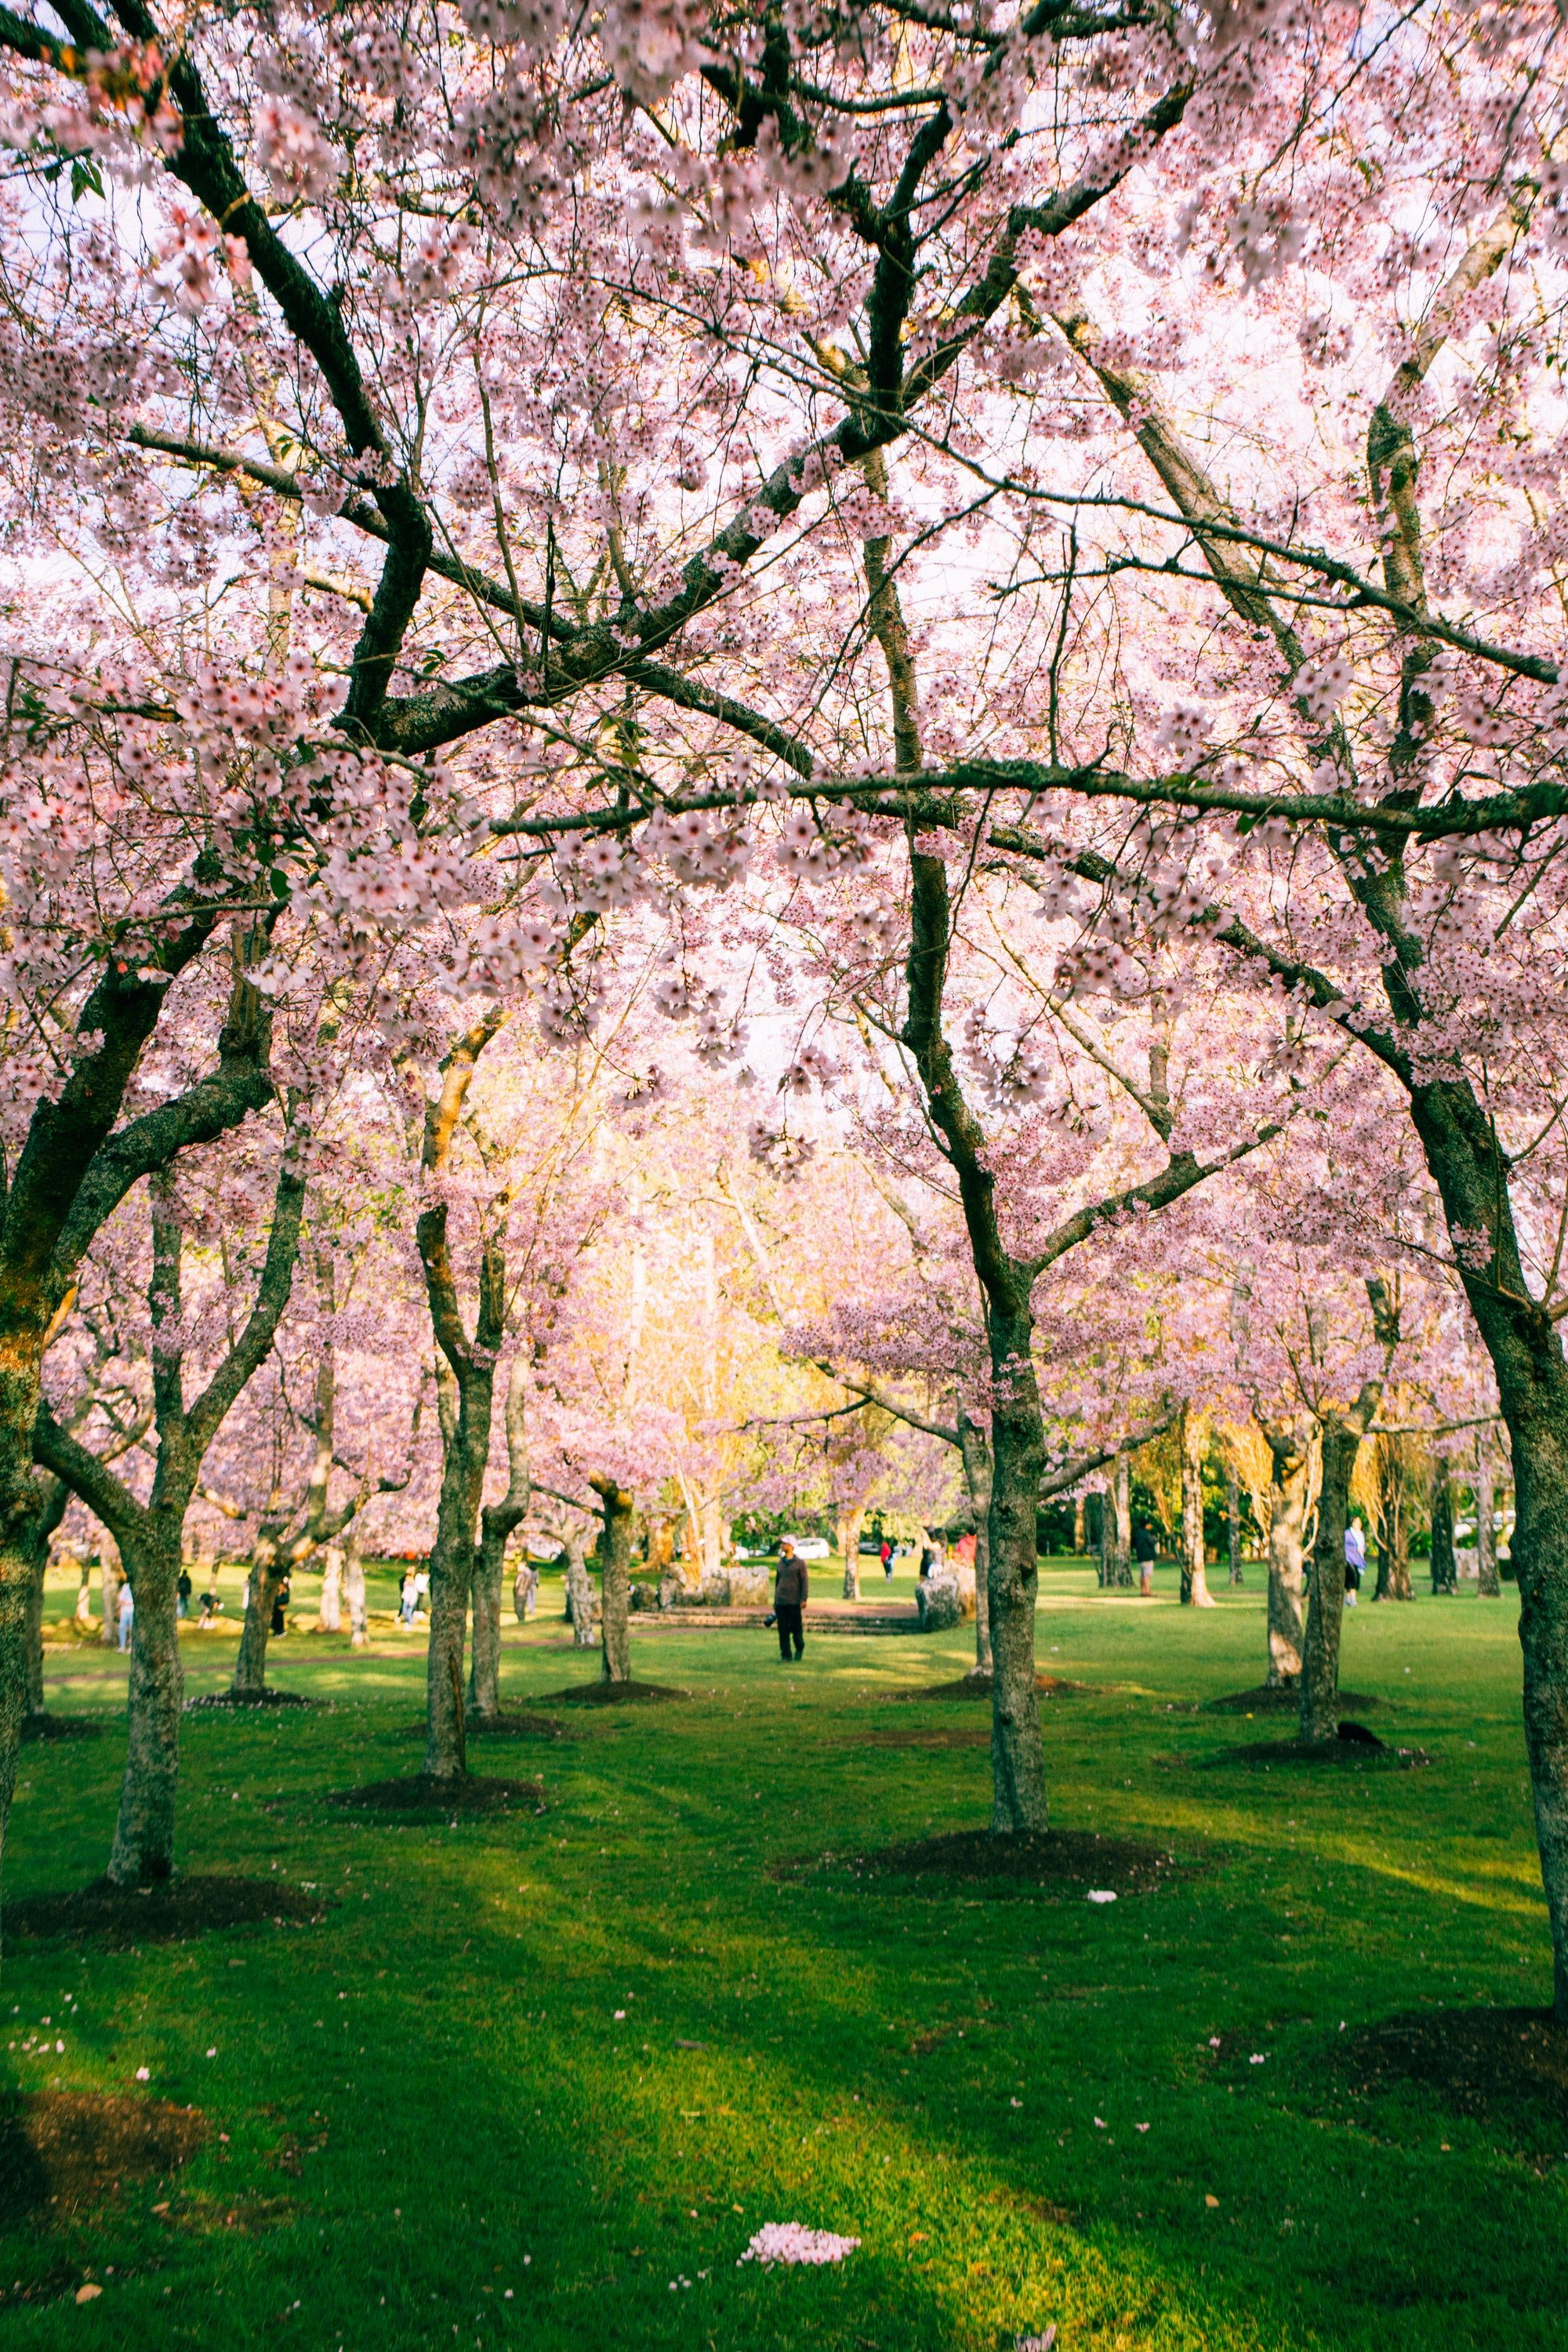 Thanks To Yustinus Subiakto For Making This Photo Available Freely On Unsplash Cherry Blossom Wallpaper Cherry Blossom Tour Blossom Garden